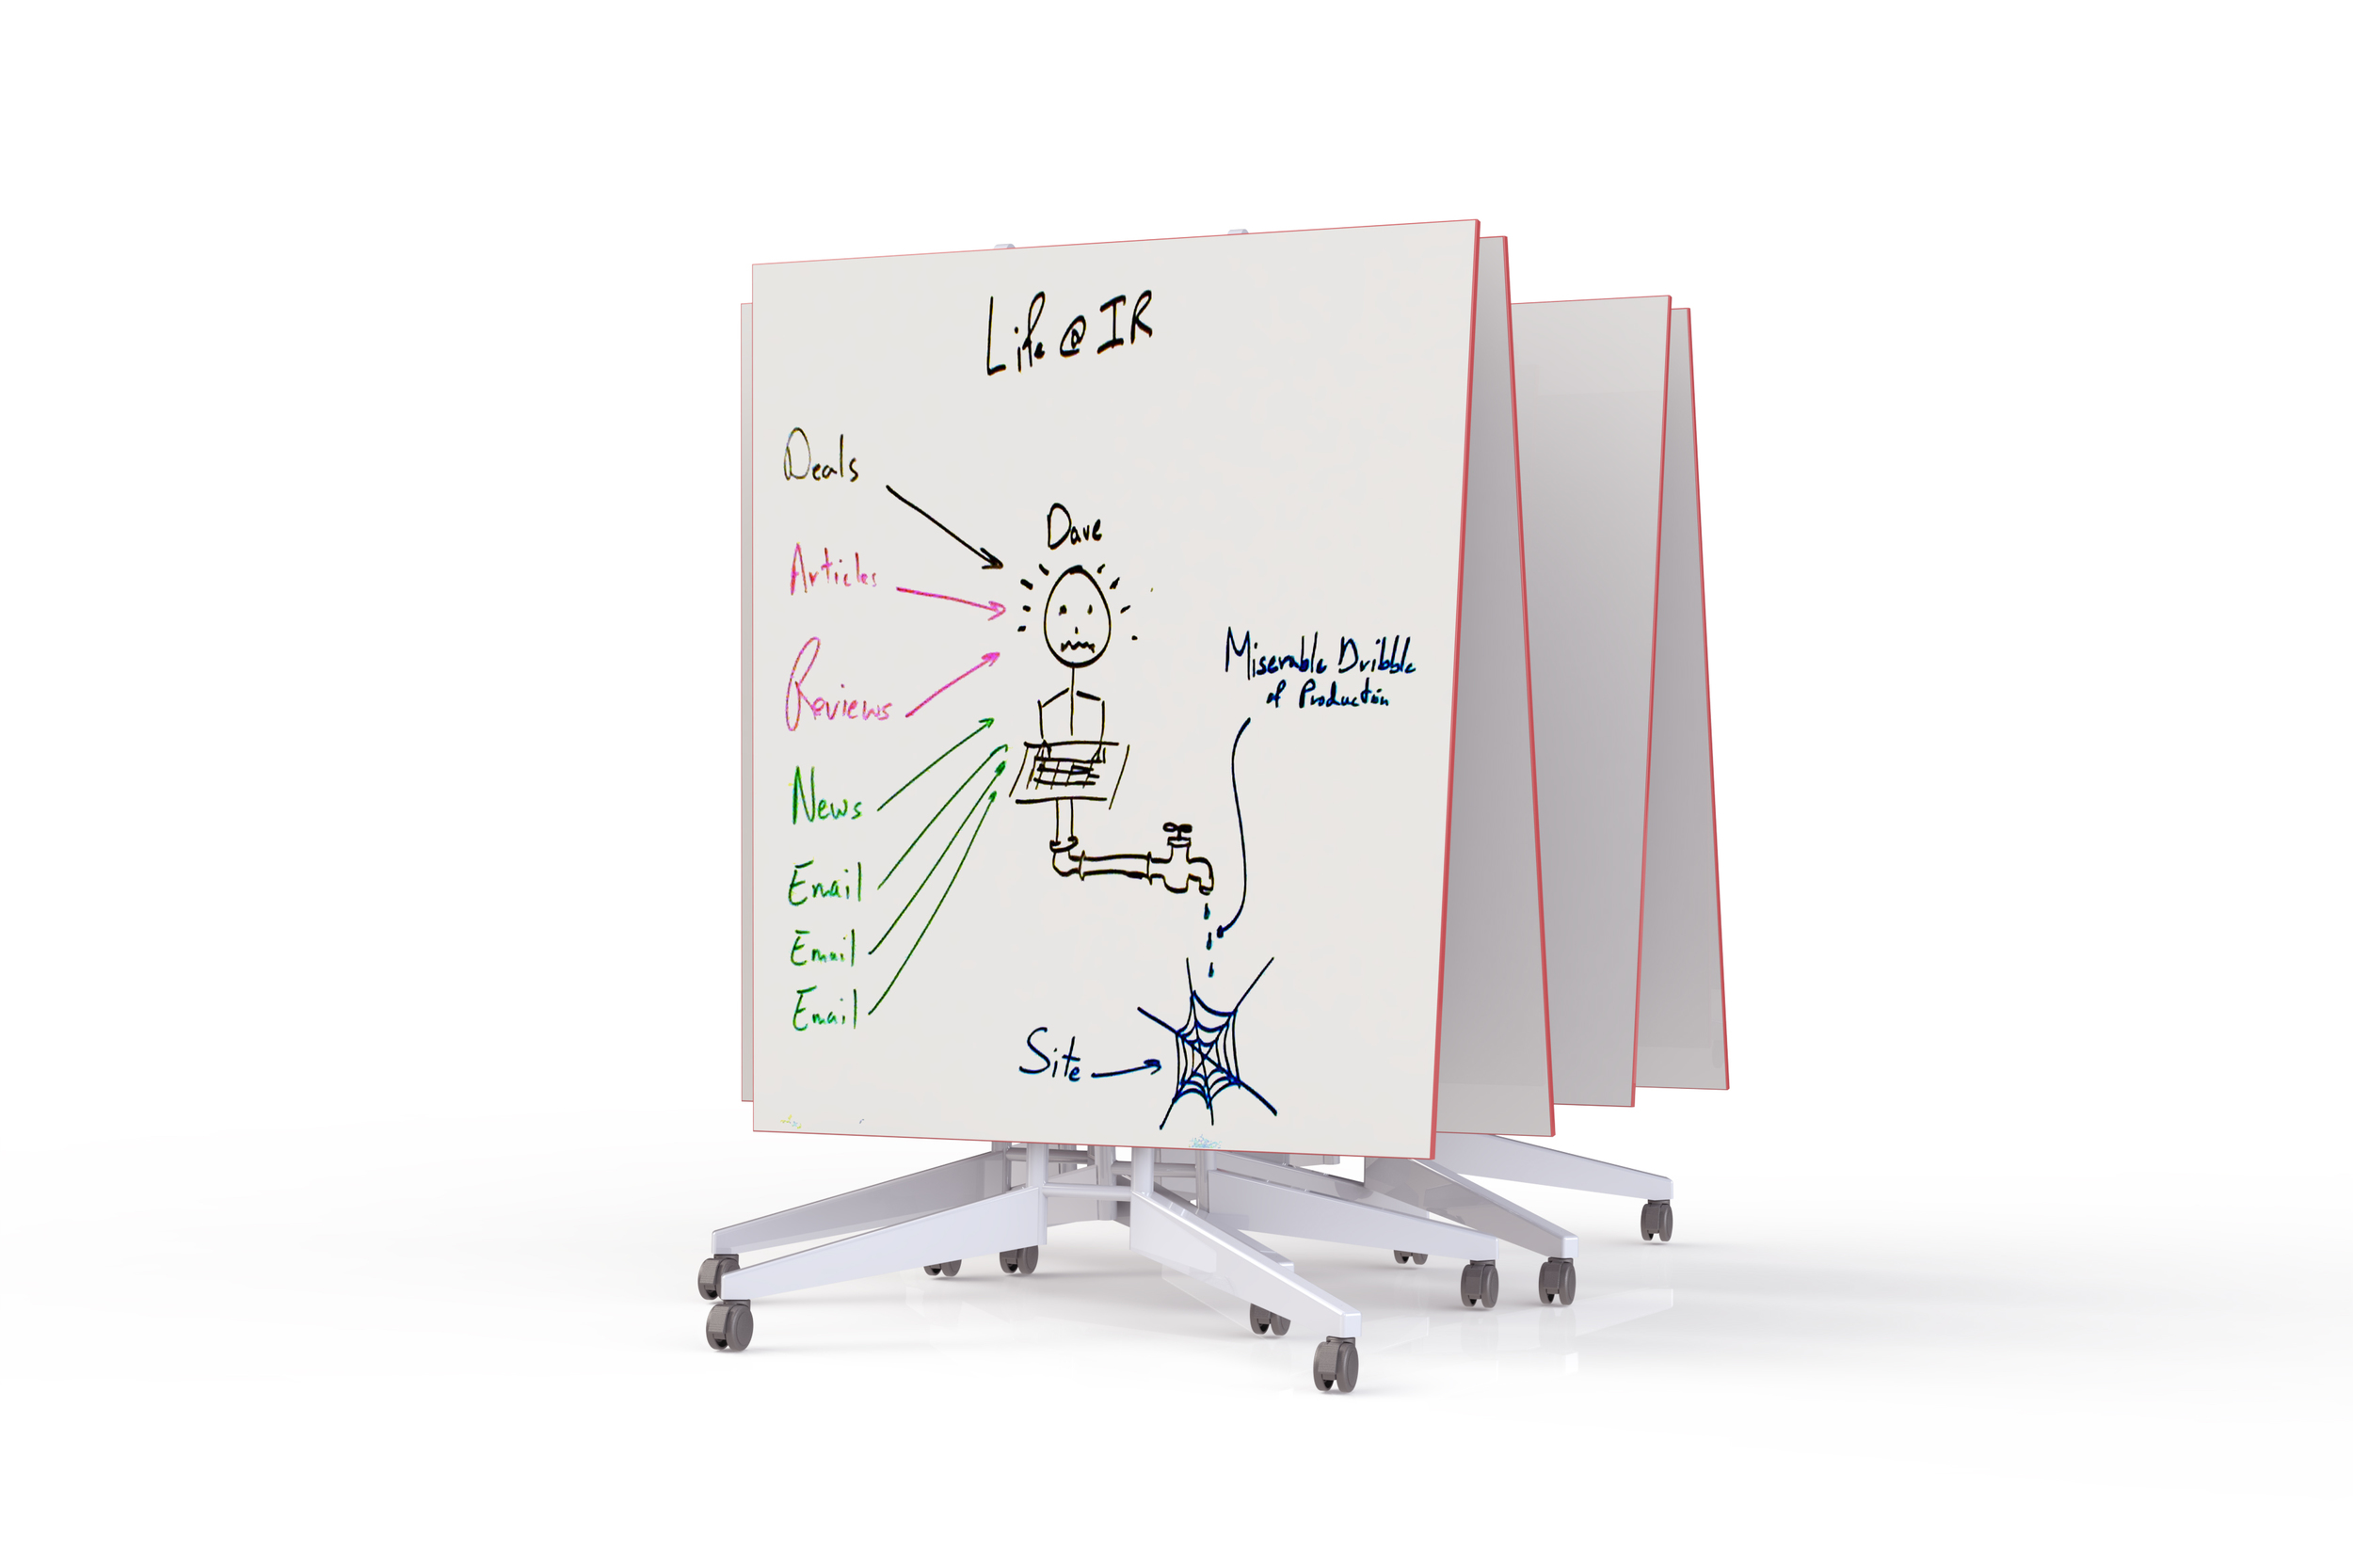 NOMAD 12' conference table dry erase whiteboard